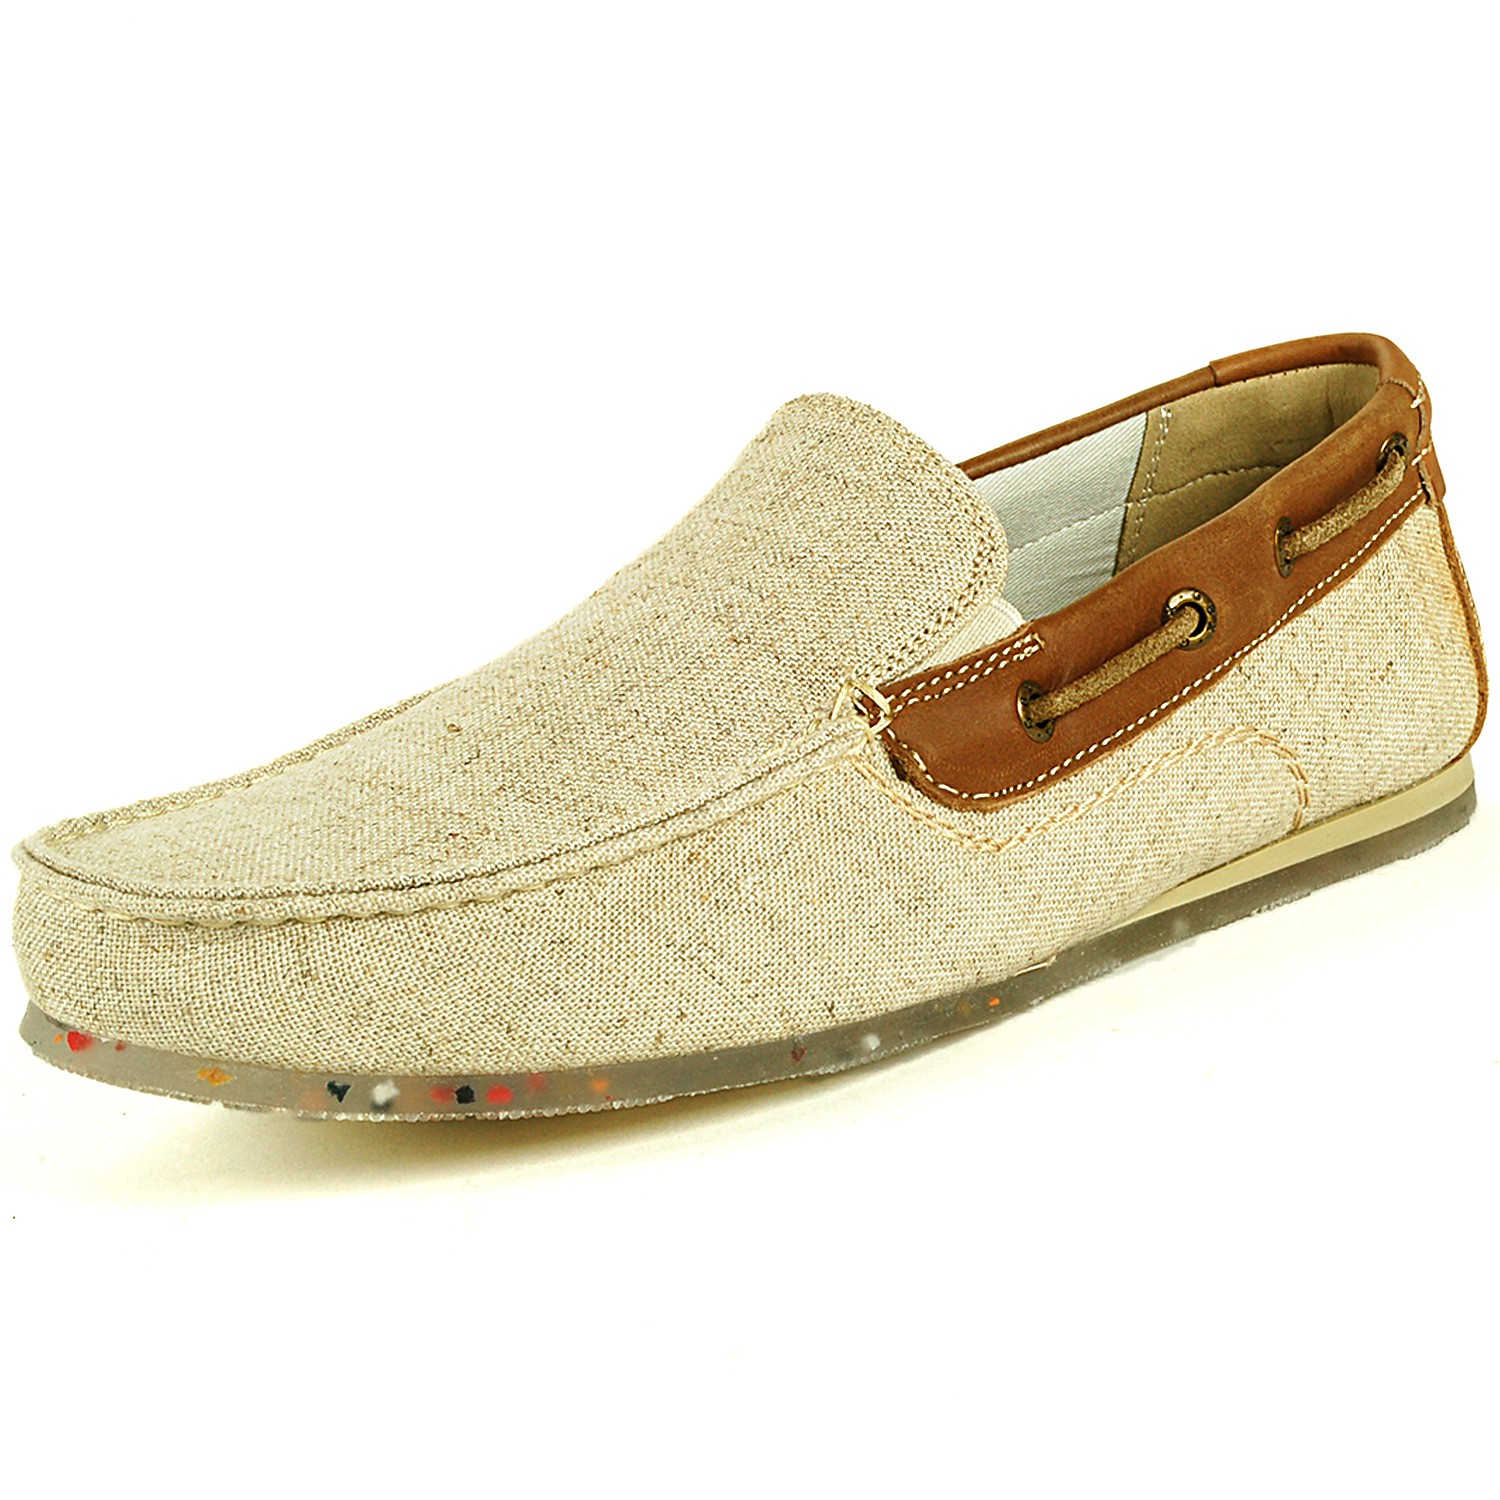 gbx mens boat shoes slip on loafers moc toe